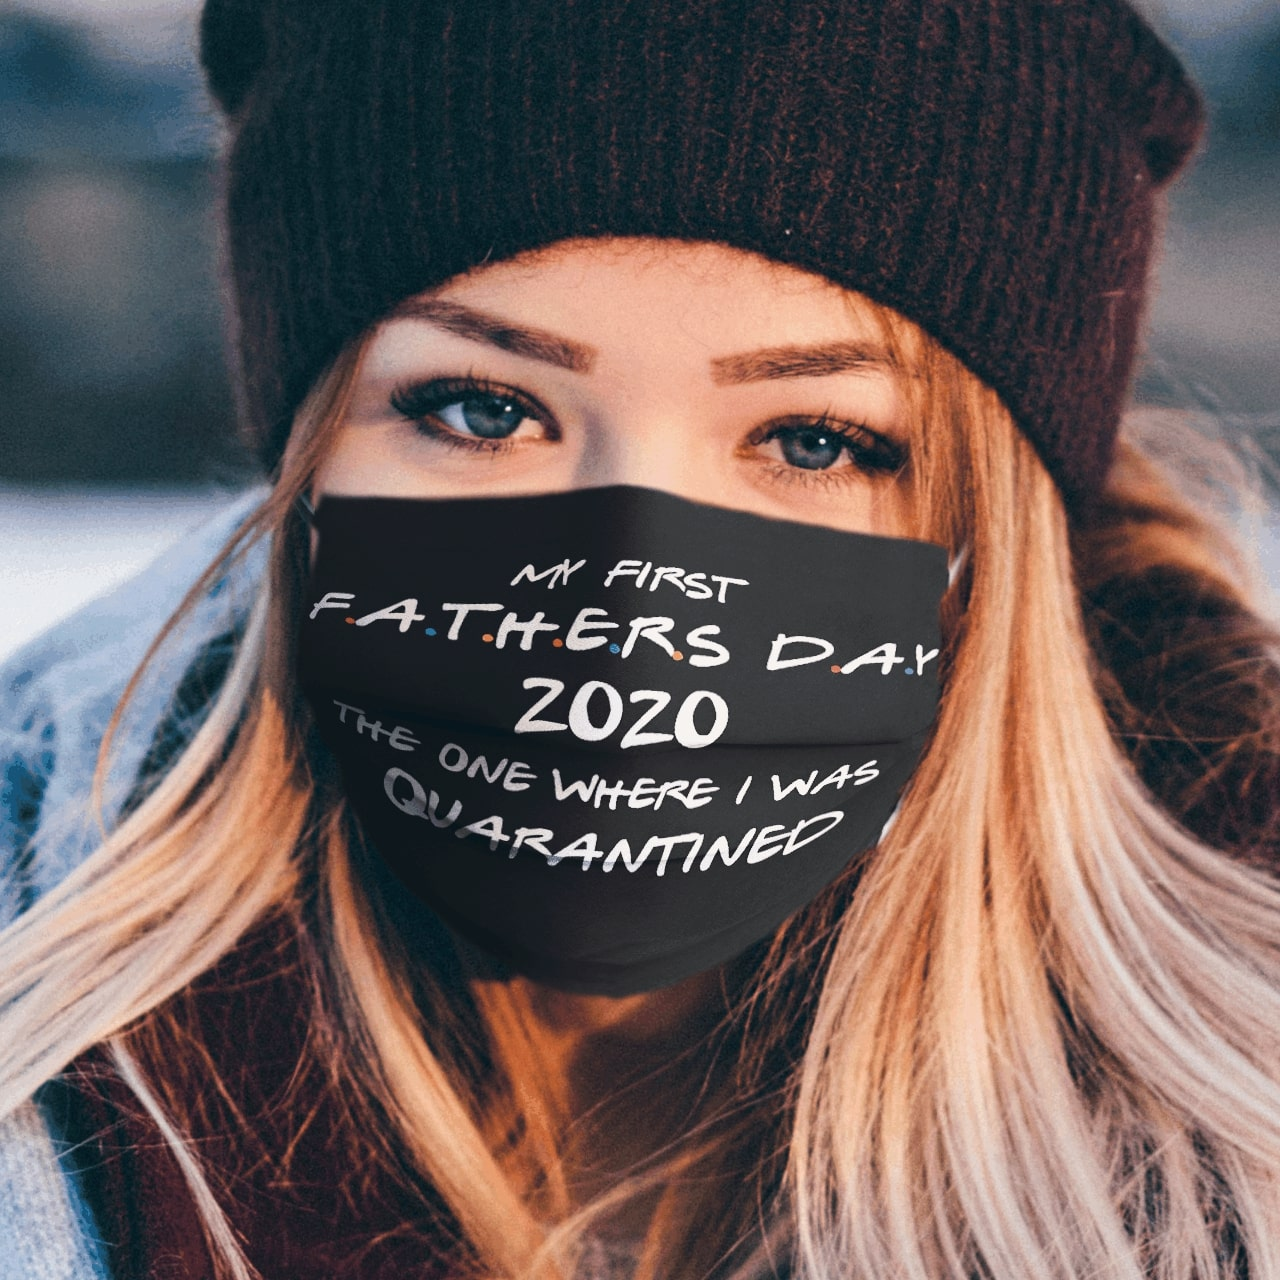 My first father's day 2020 the one i was in quarantined cotton face mask 3